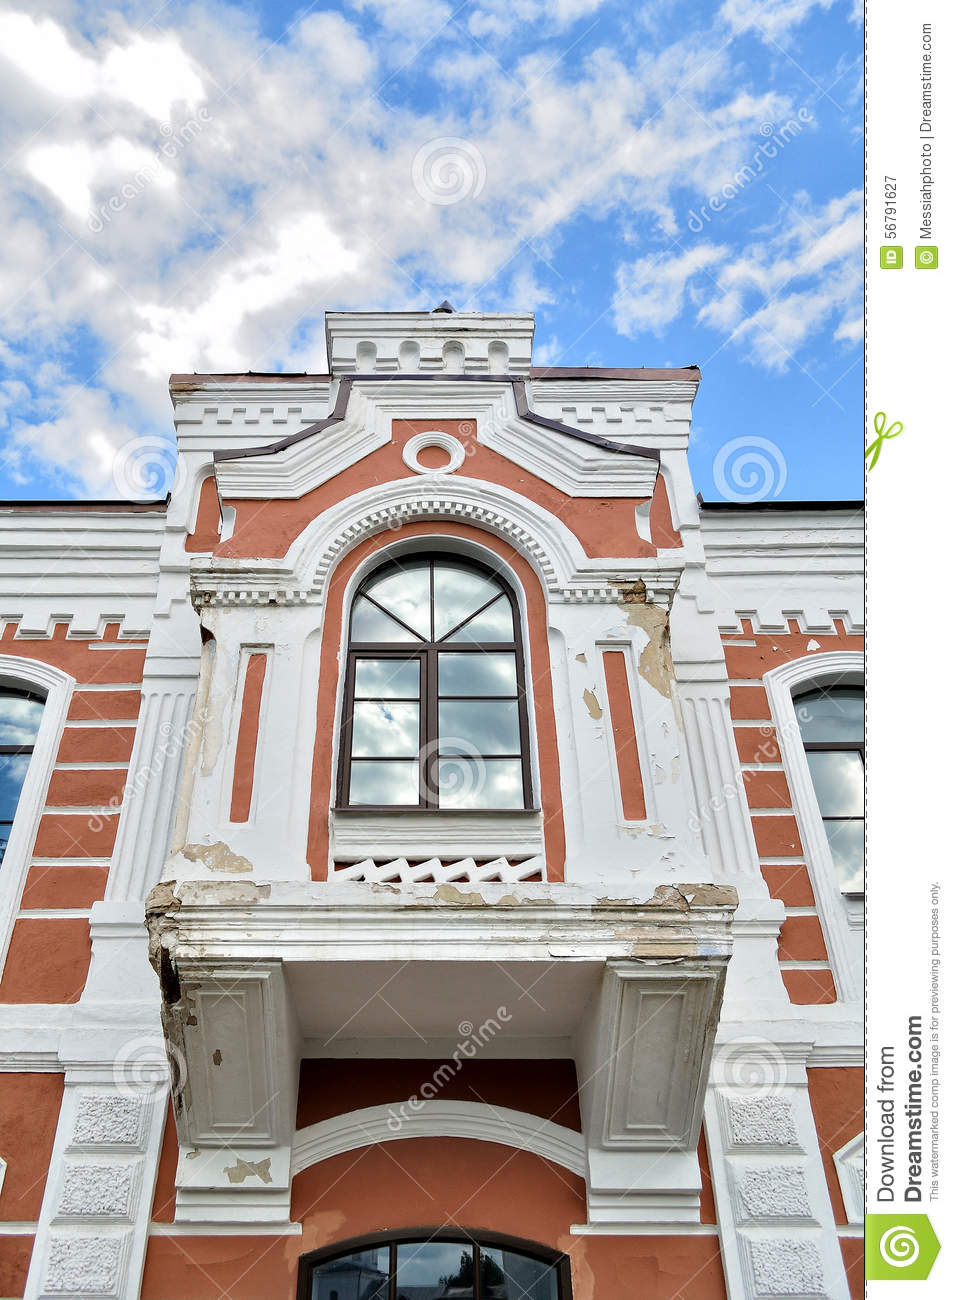 Architectural Building Elements : Decorative sculptural elements on the facade of old